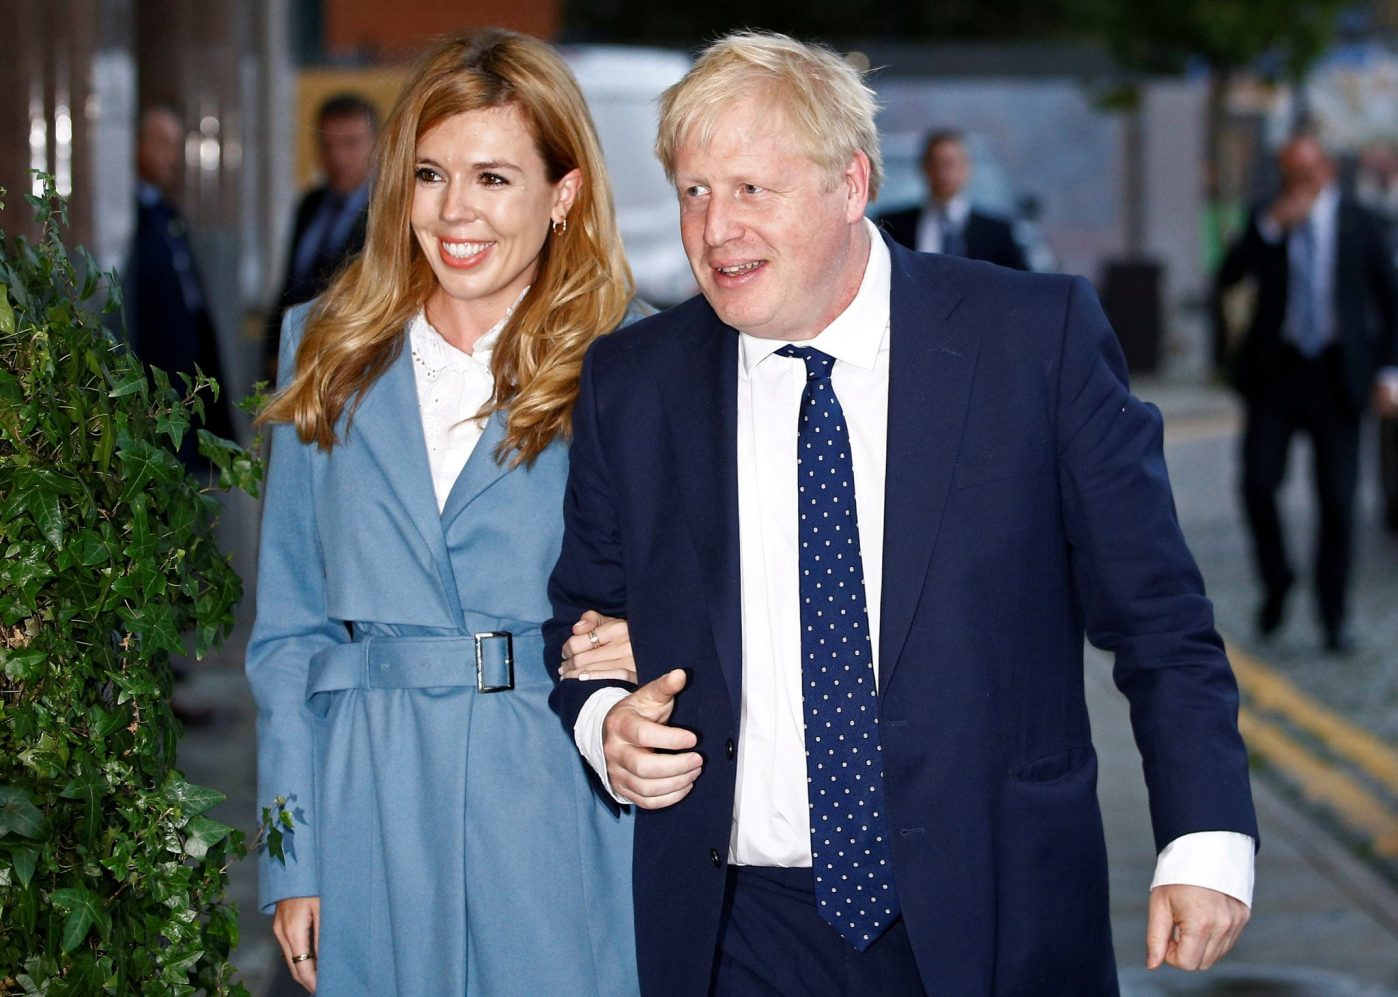 boris johnson annonces birth of son